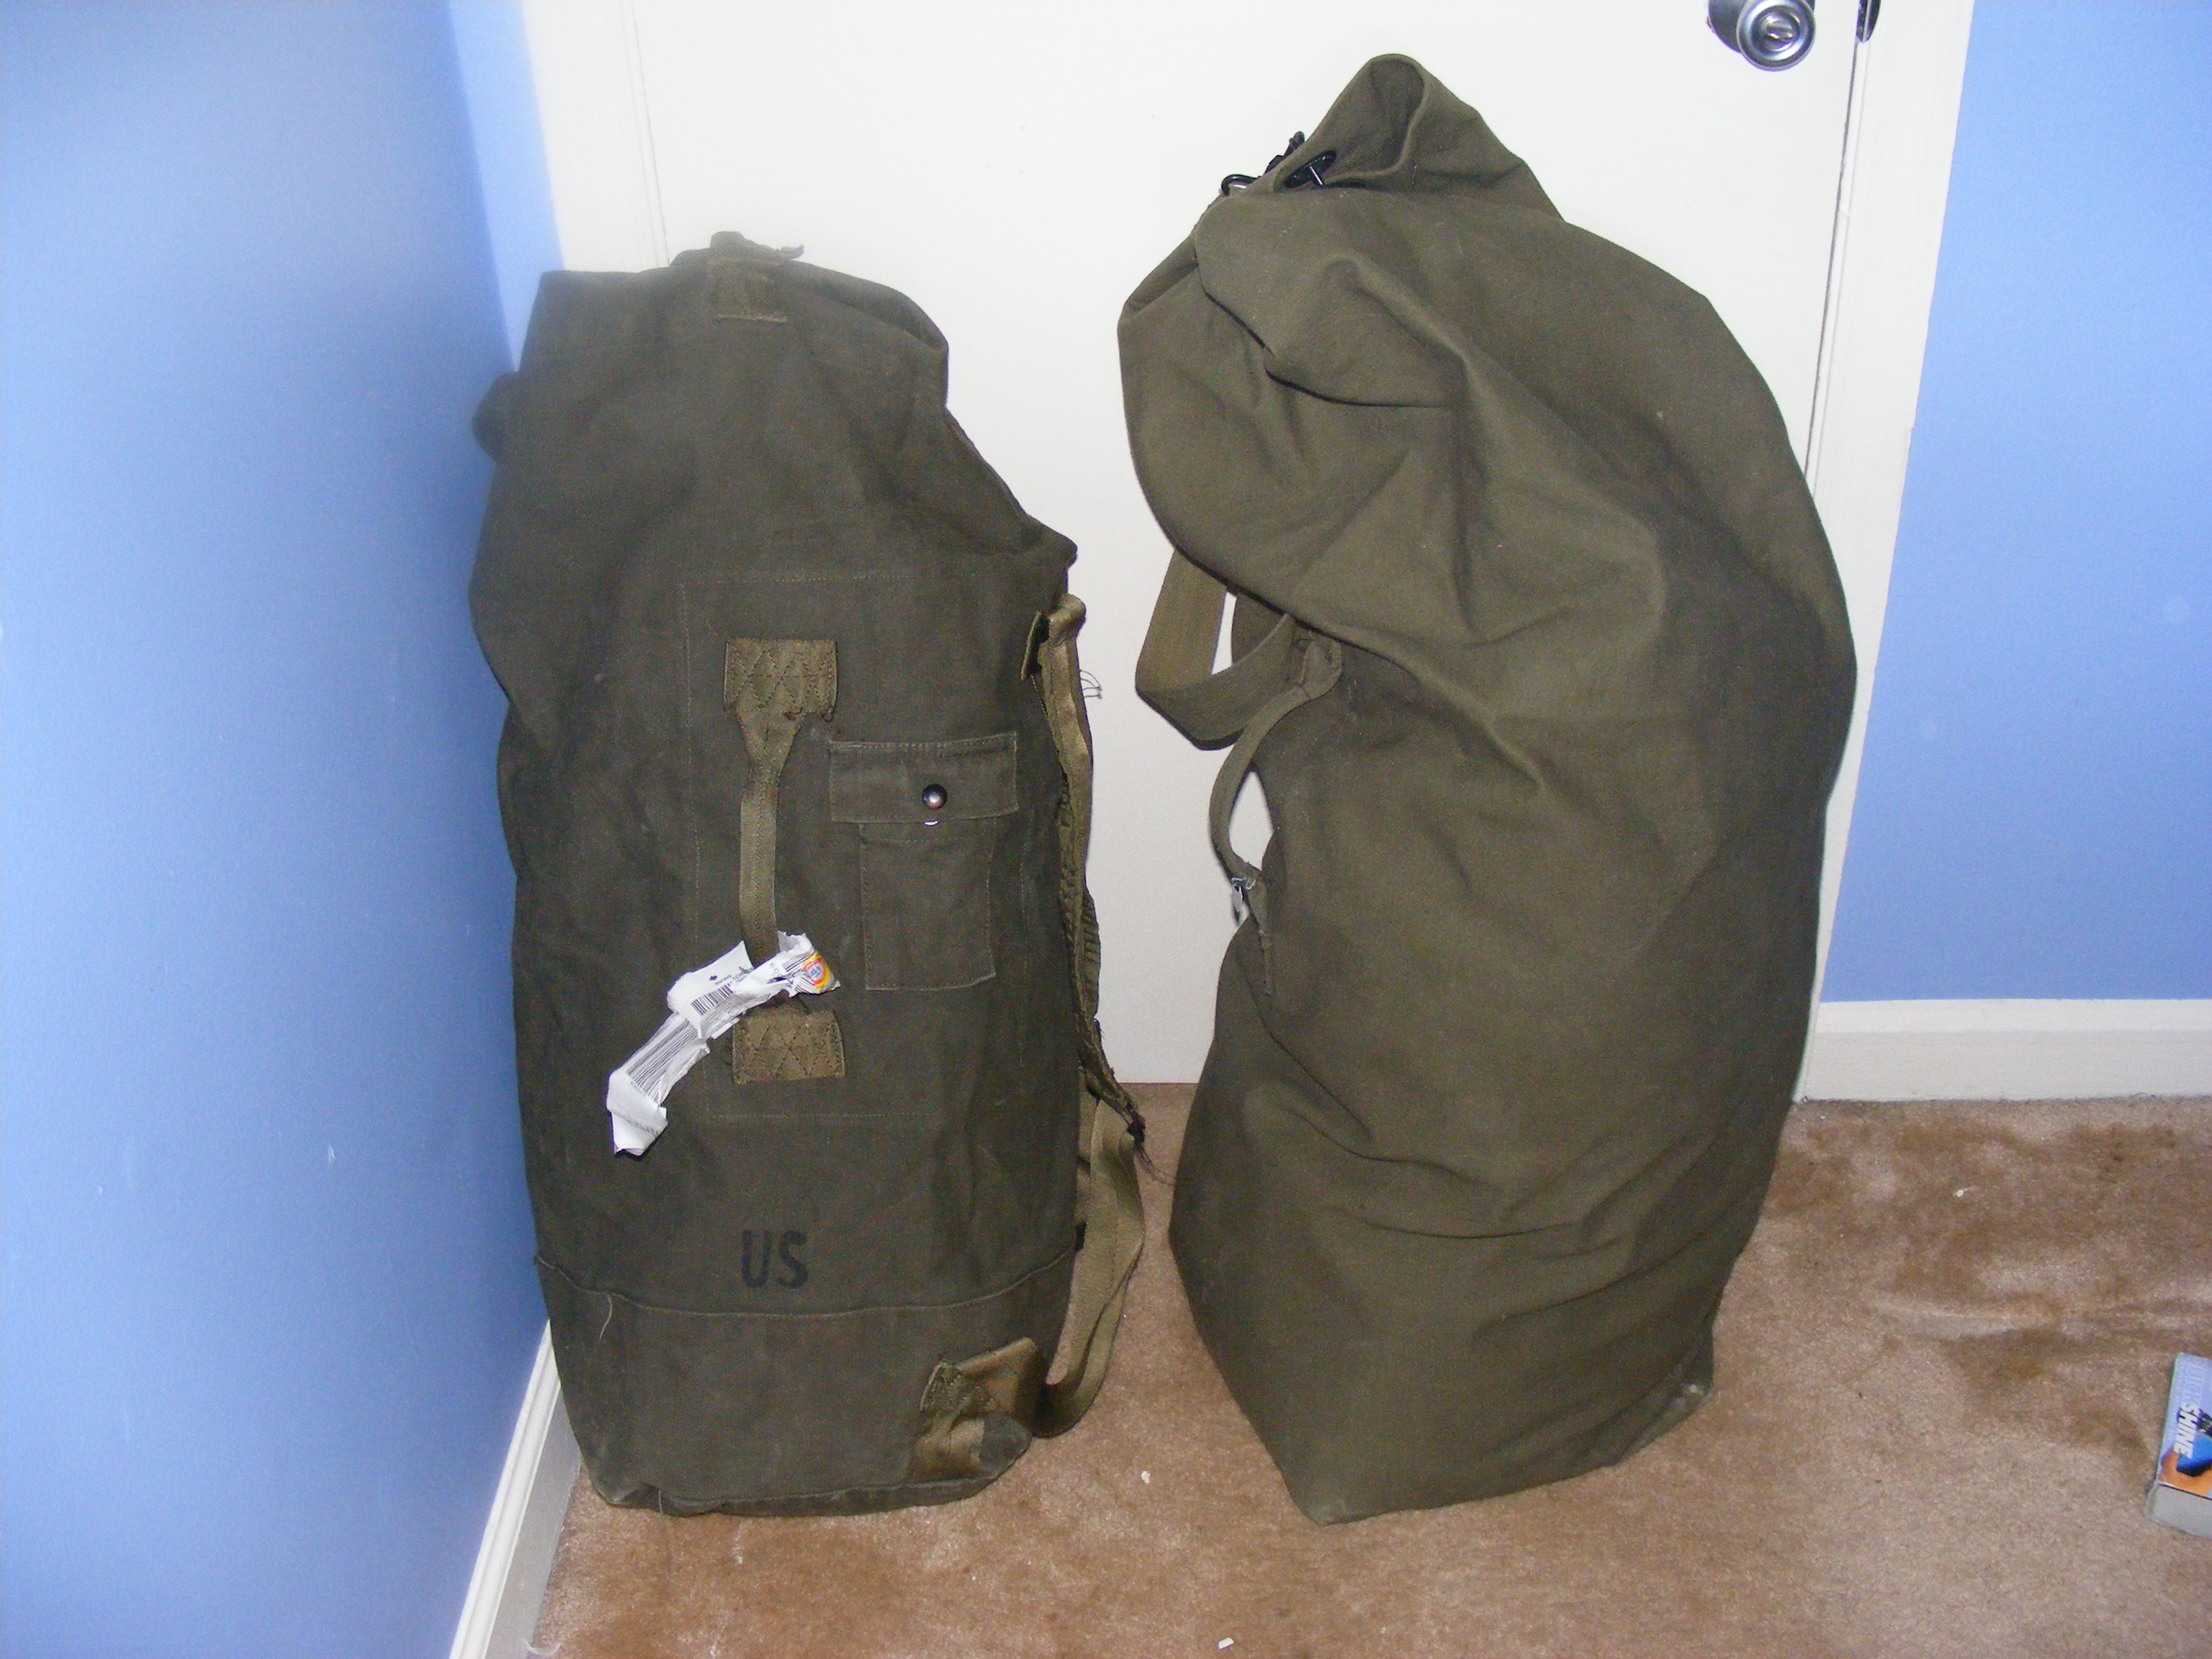 490467a115 Duffel bag - Wikipedia